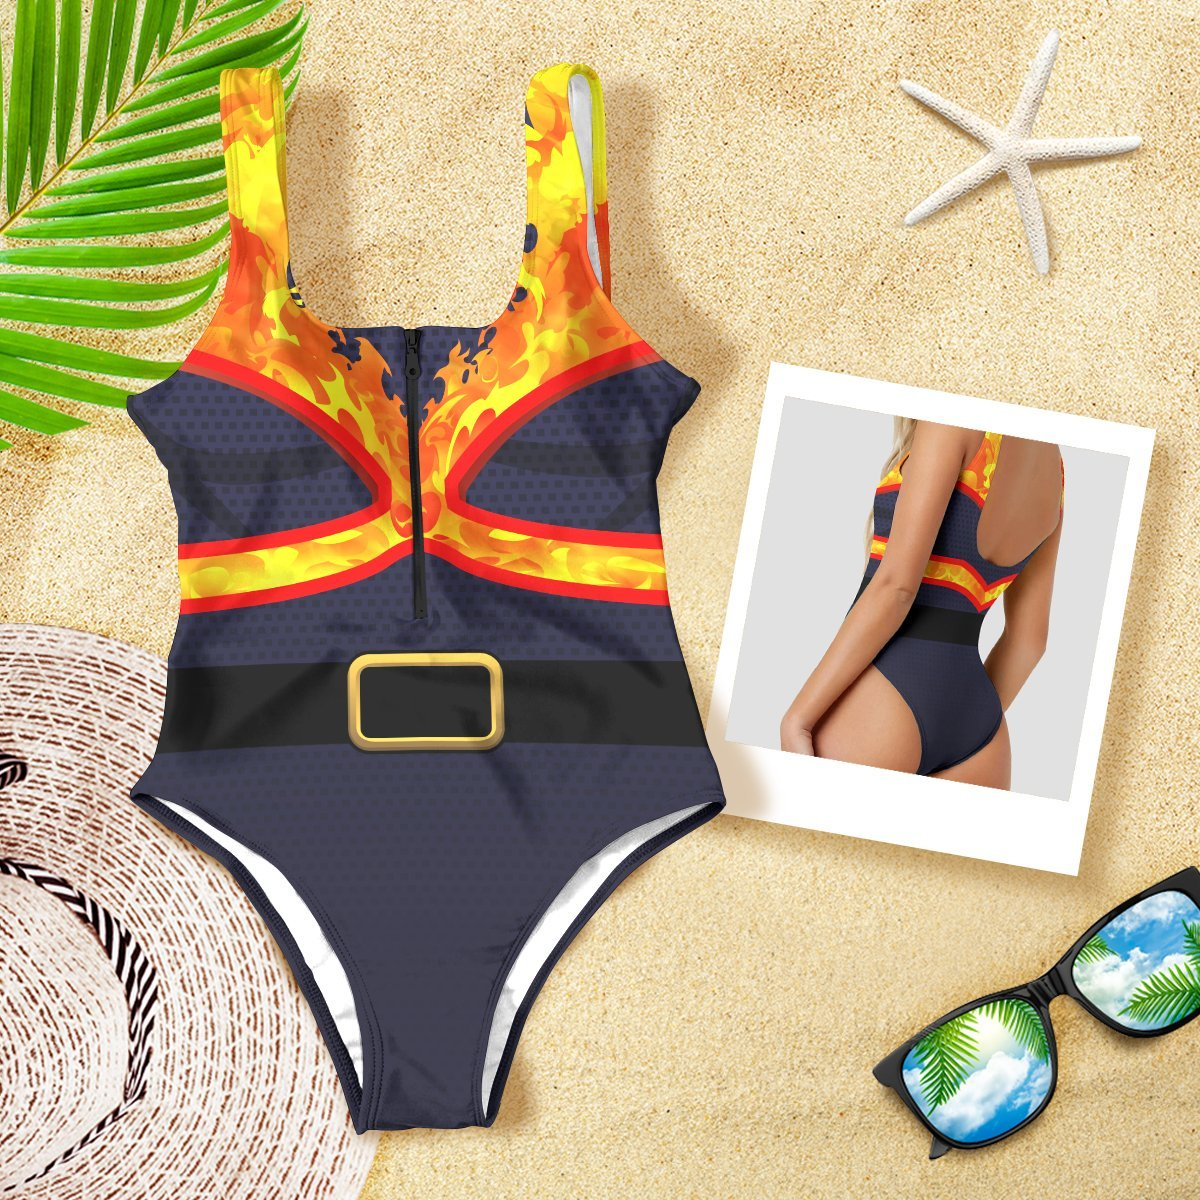 S Official Anime Swimsuit Merch